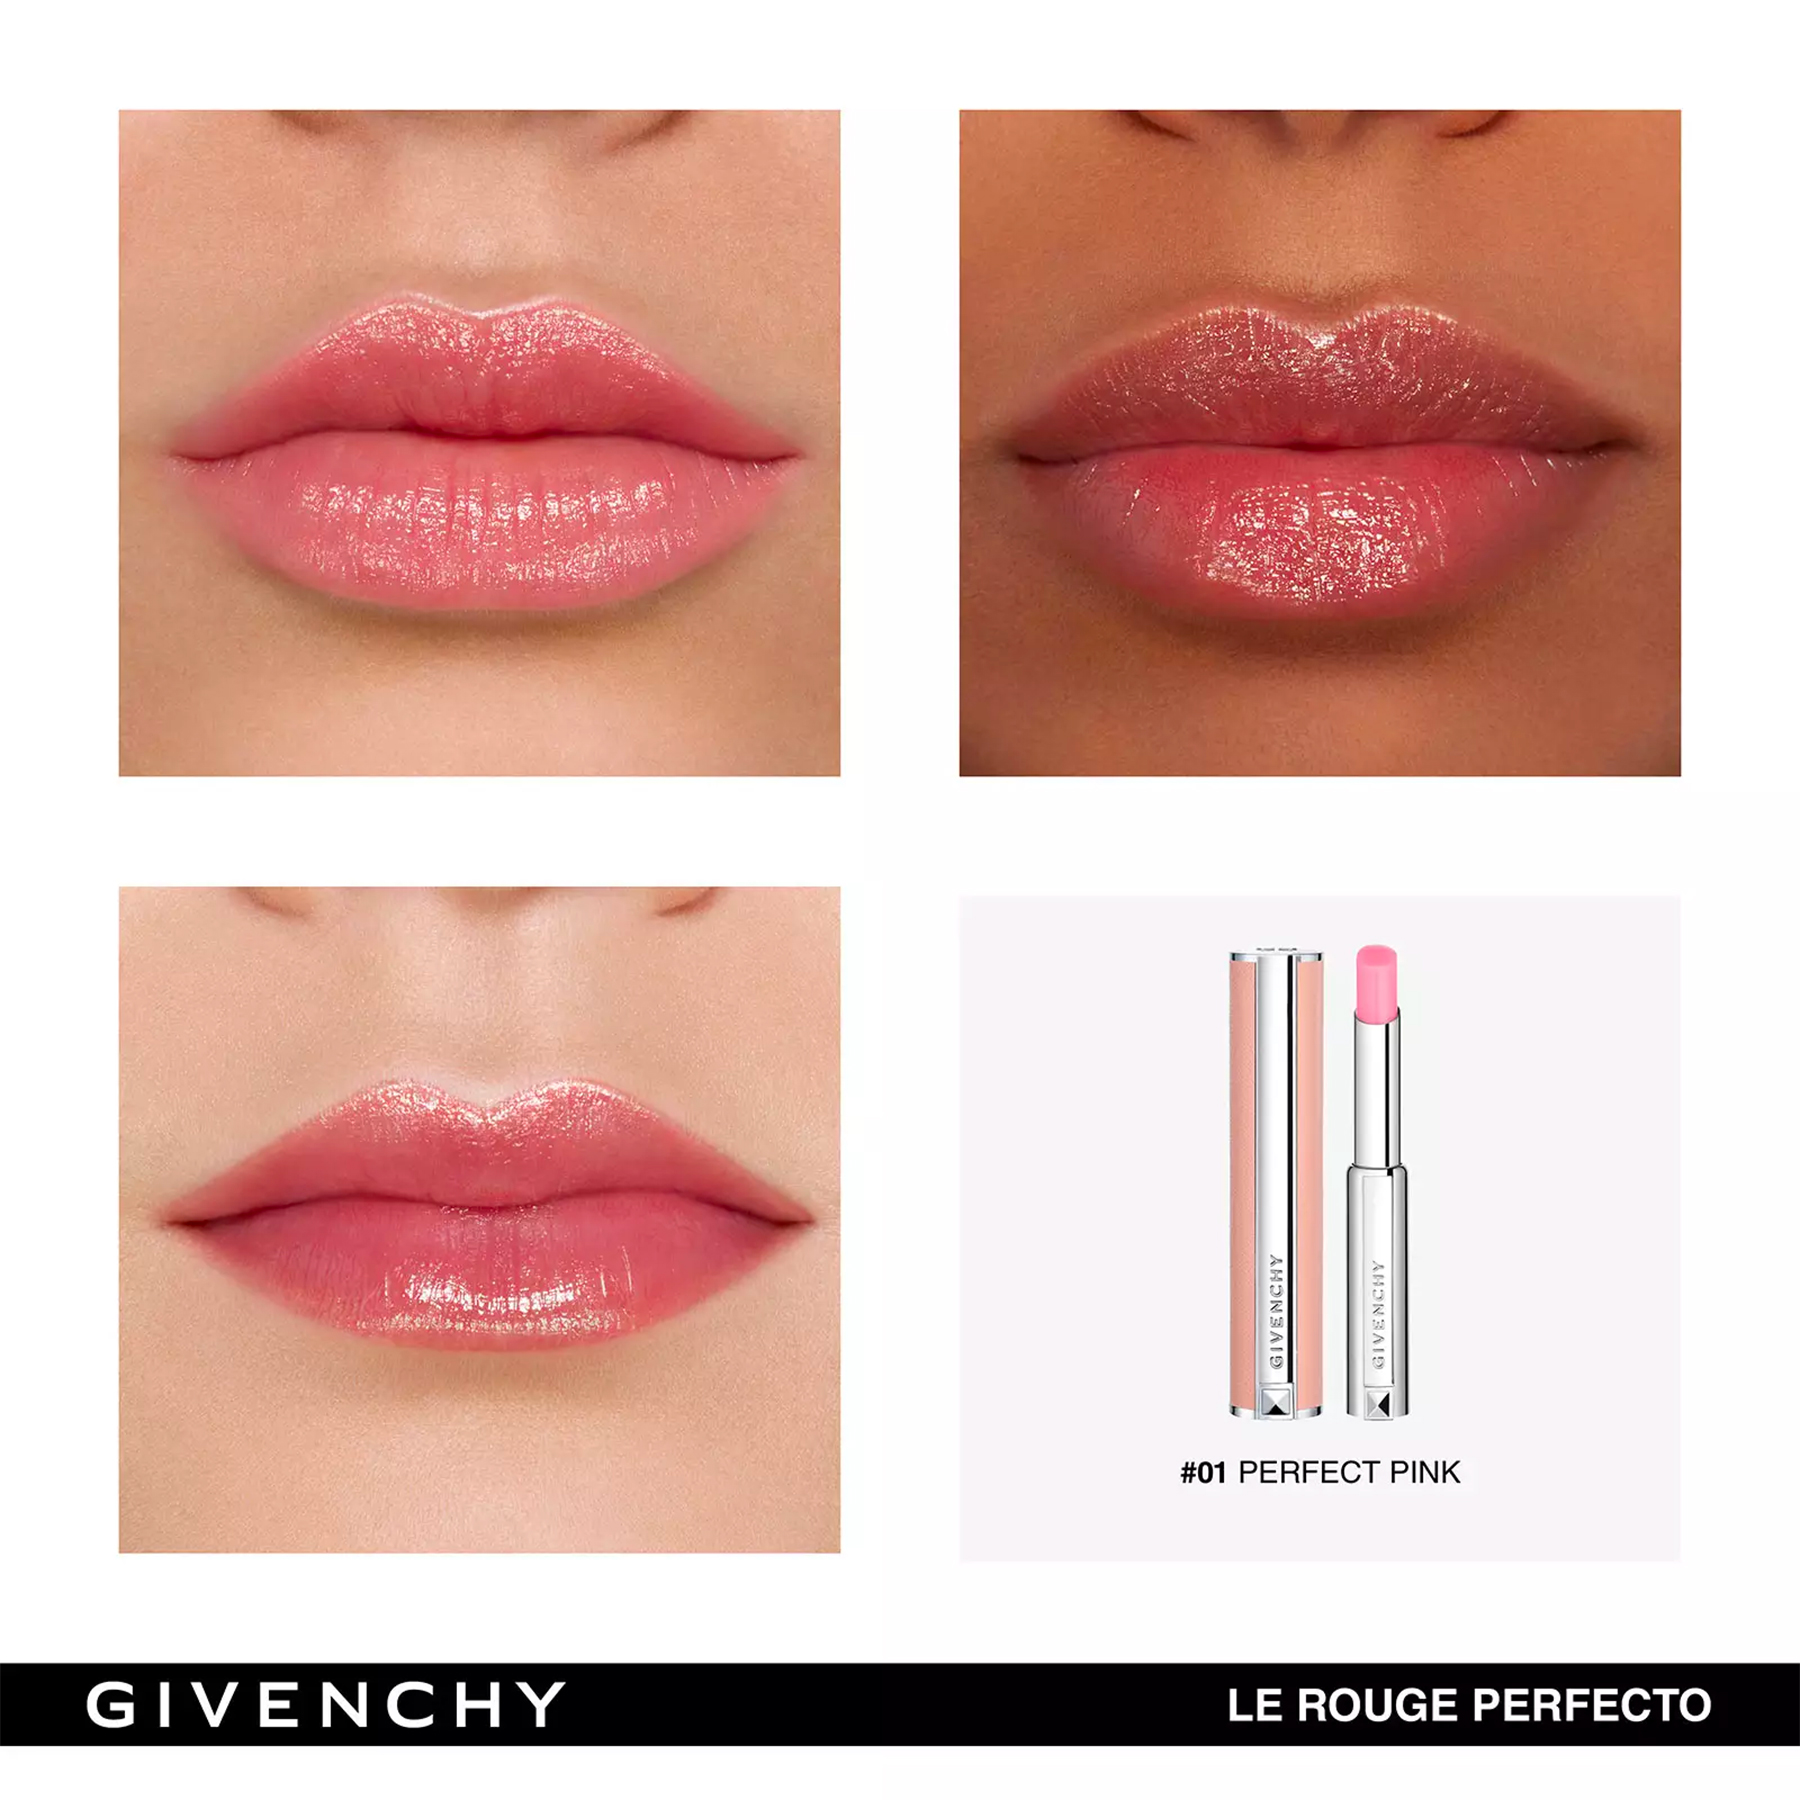 givenchy-rose-perfecto-perfect-pink-swatch